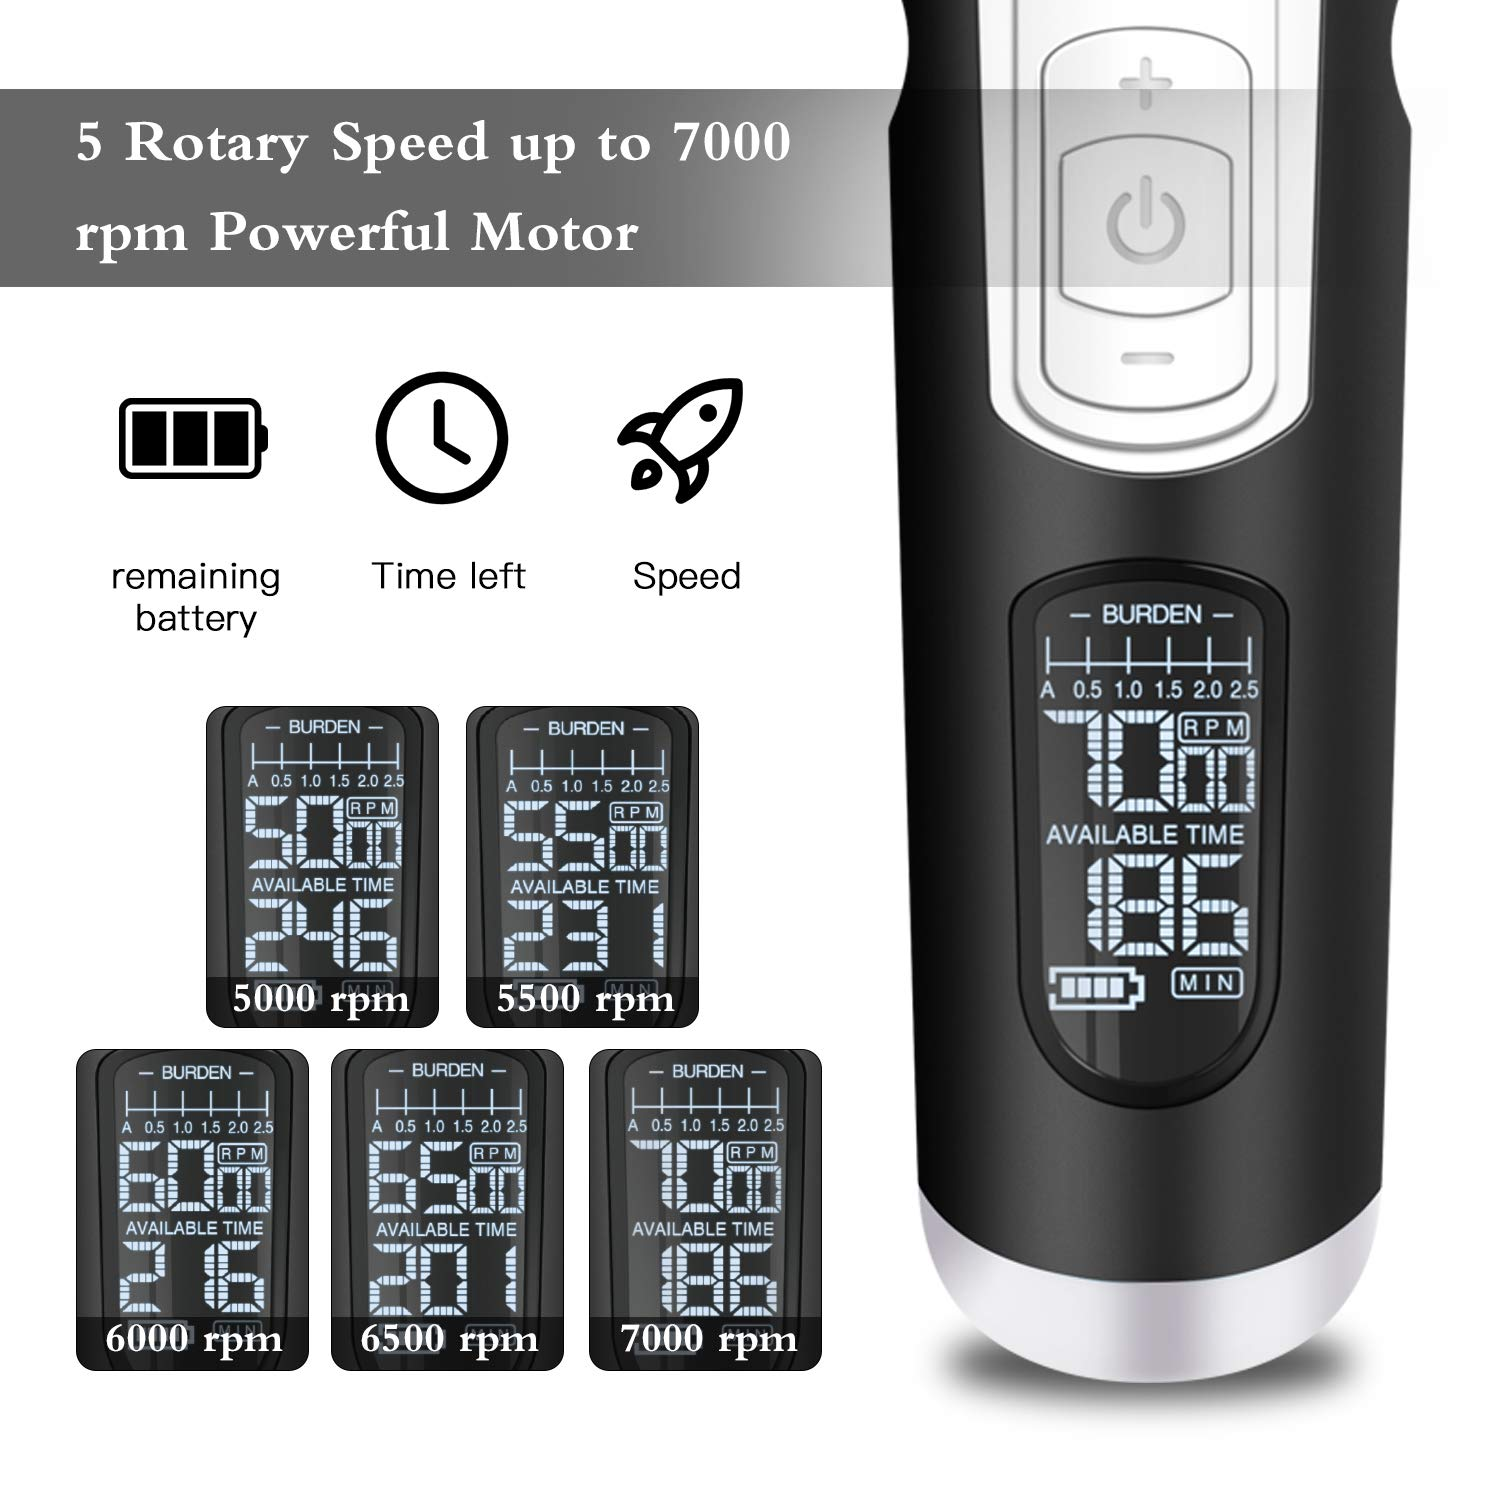 Pet Grooming Clippers for Dog Cat with 5 Speed, 4 Hour Battery Life, Ultra-High Definition LCD Display, Powerful Motor, 50db Ultra Quiet, Designed Exclusively for Pet Groomer